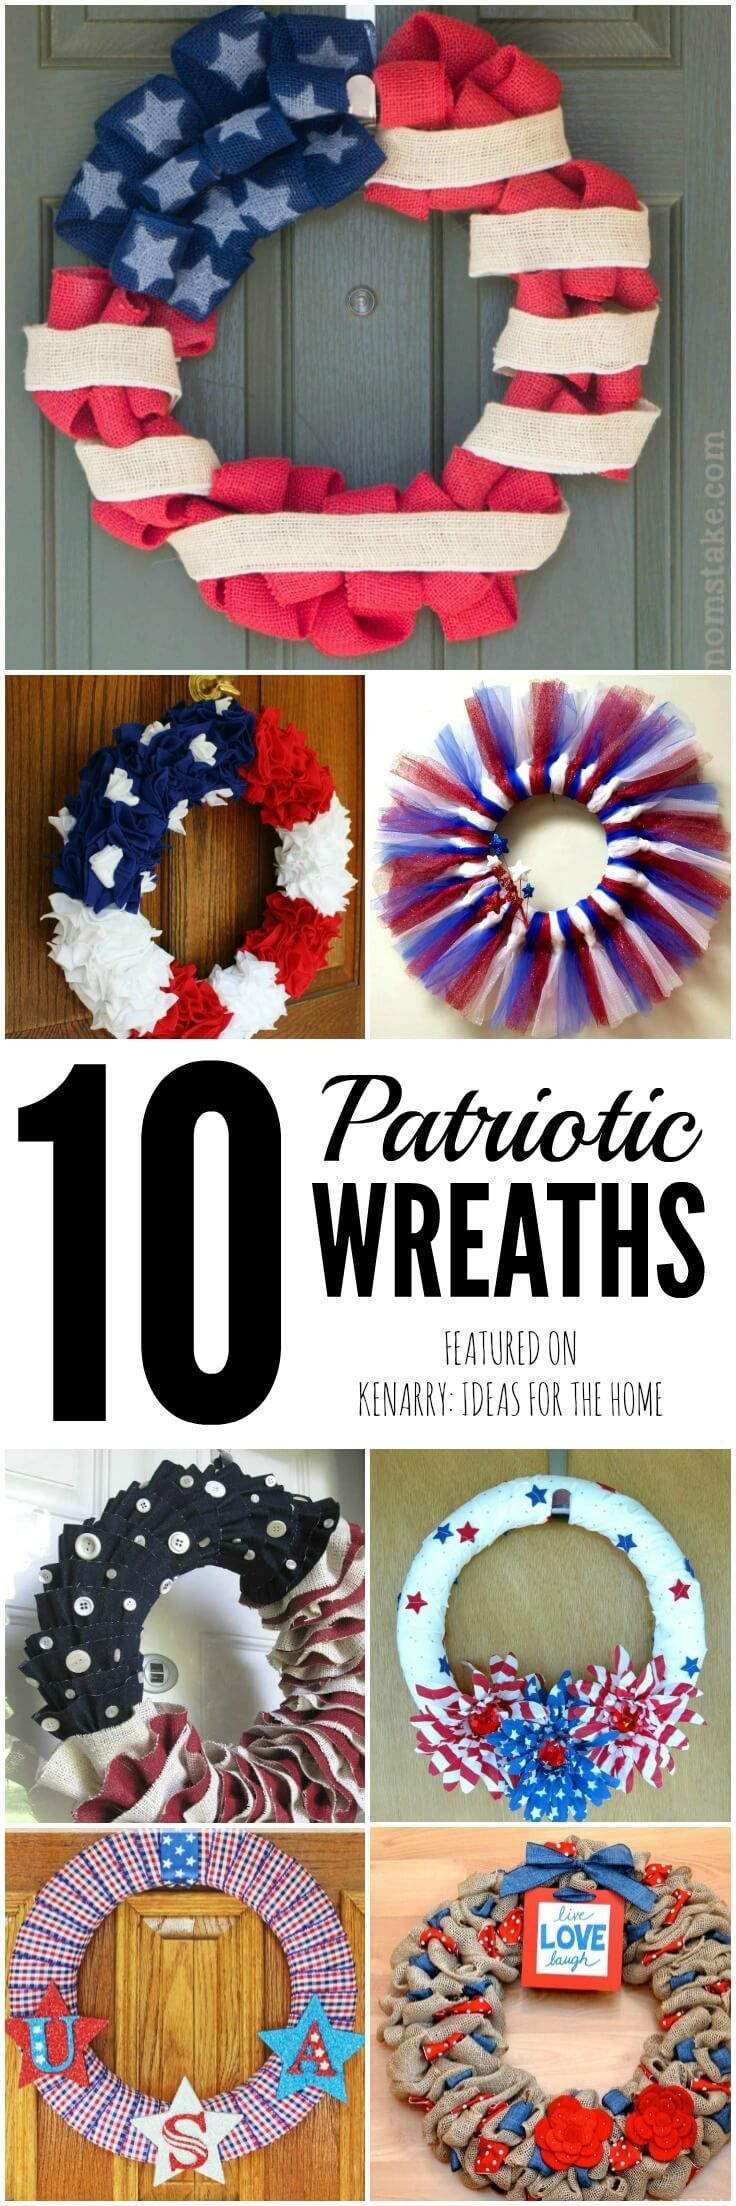 These 10 great ideas for 4th of July Wreaths would be beautiful to decorate your front door for Independence Day -- plus Memorial Day and Labor Day too! Have fun making these patriotic red, white and blue crafts.